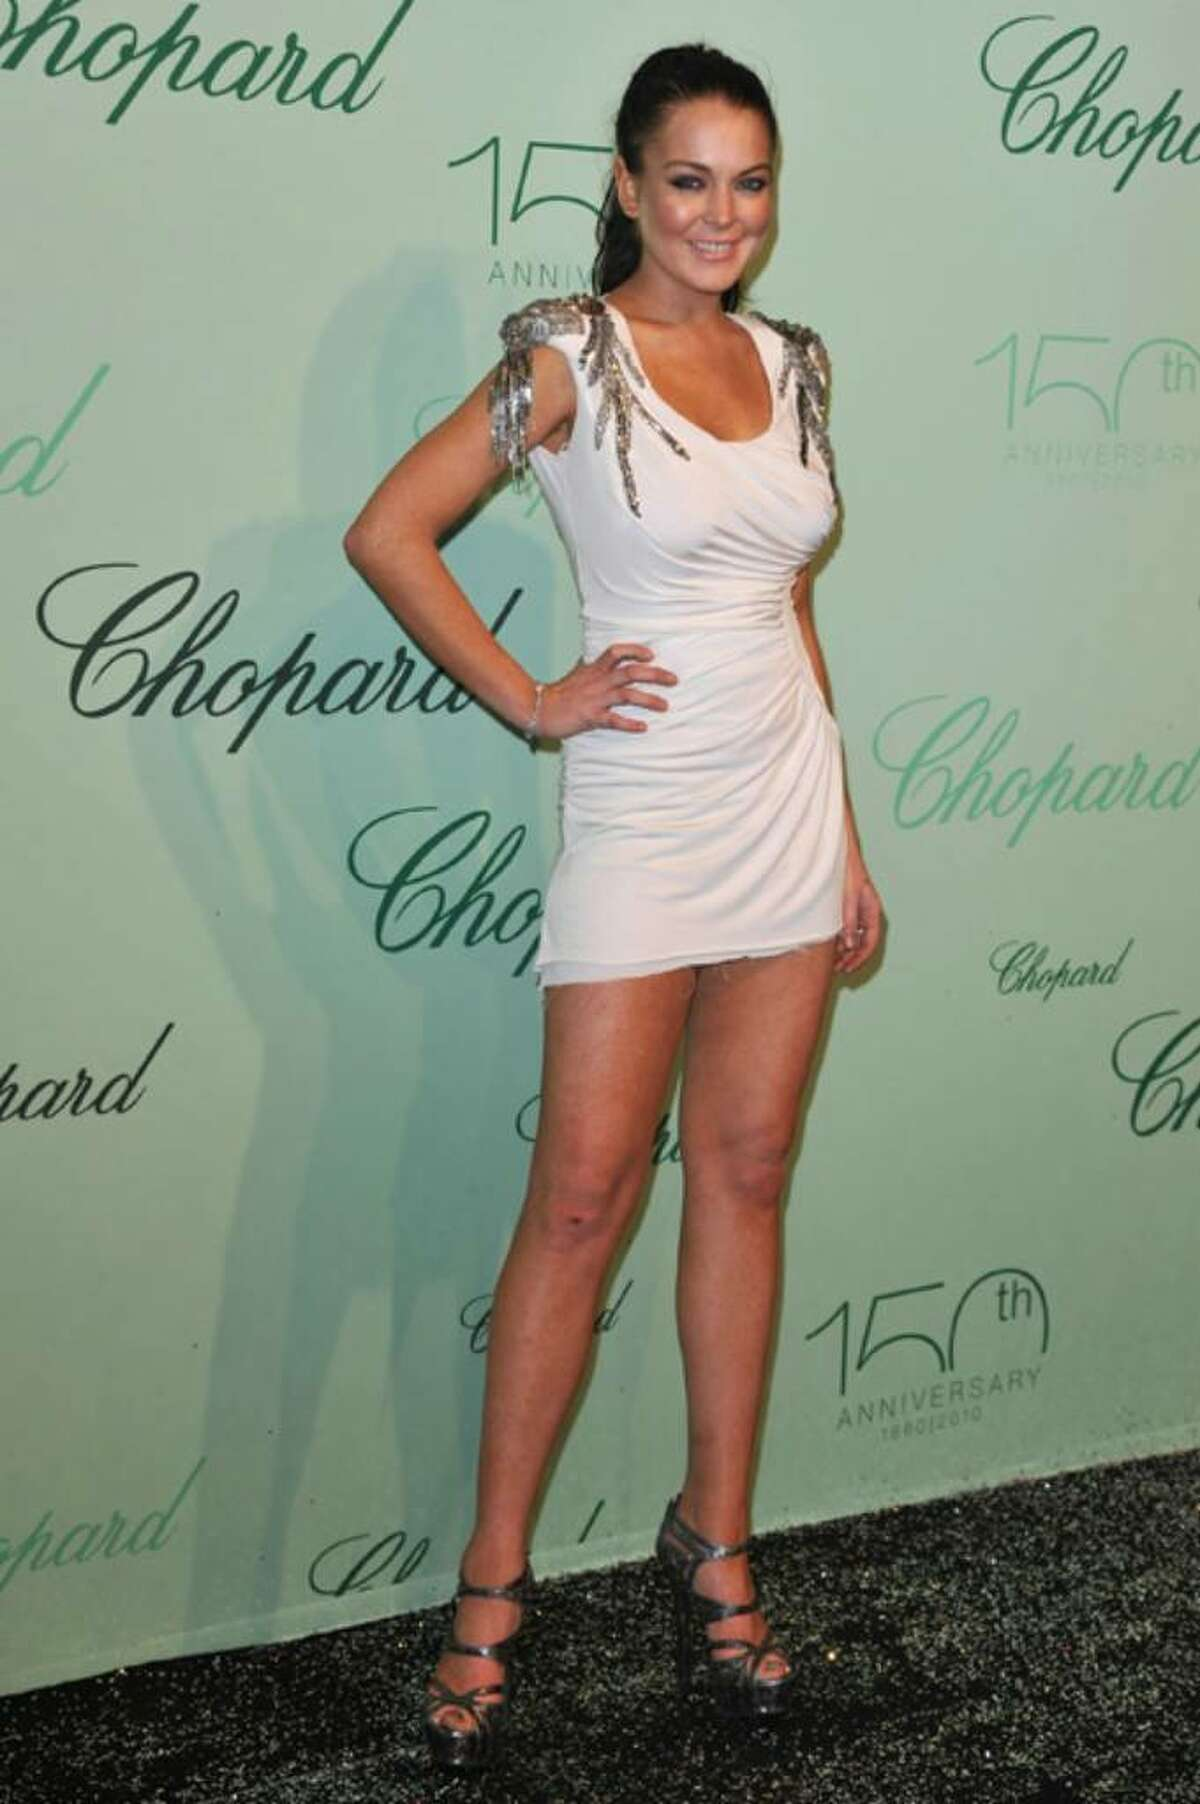 CANNES, FRANCE - MAY 17: Lindsay Lohan attends the Chopard 150th Anniversary Party at Palm Beach, Pointe Croisette during the 63rd Annual Cannes Film Festival on May 17, 2010 in Cannes, France. (Photo by Pascal Le Segretain/Getty Images) *** Local Caption *** Lindsay Lohan